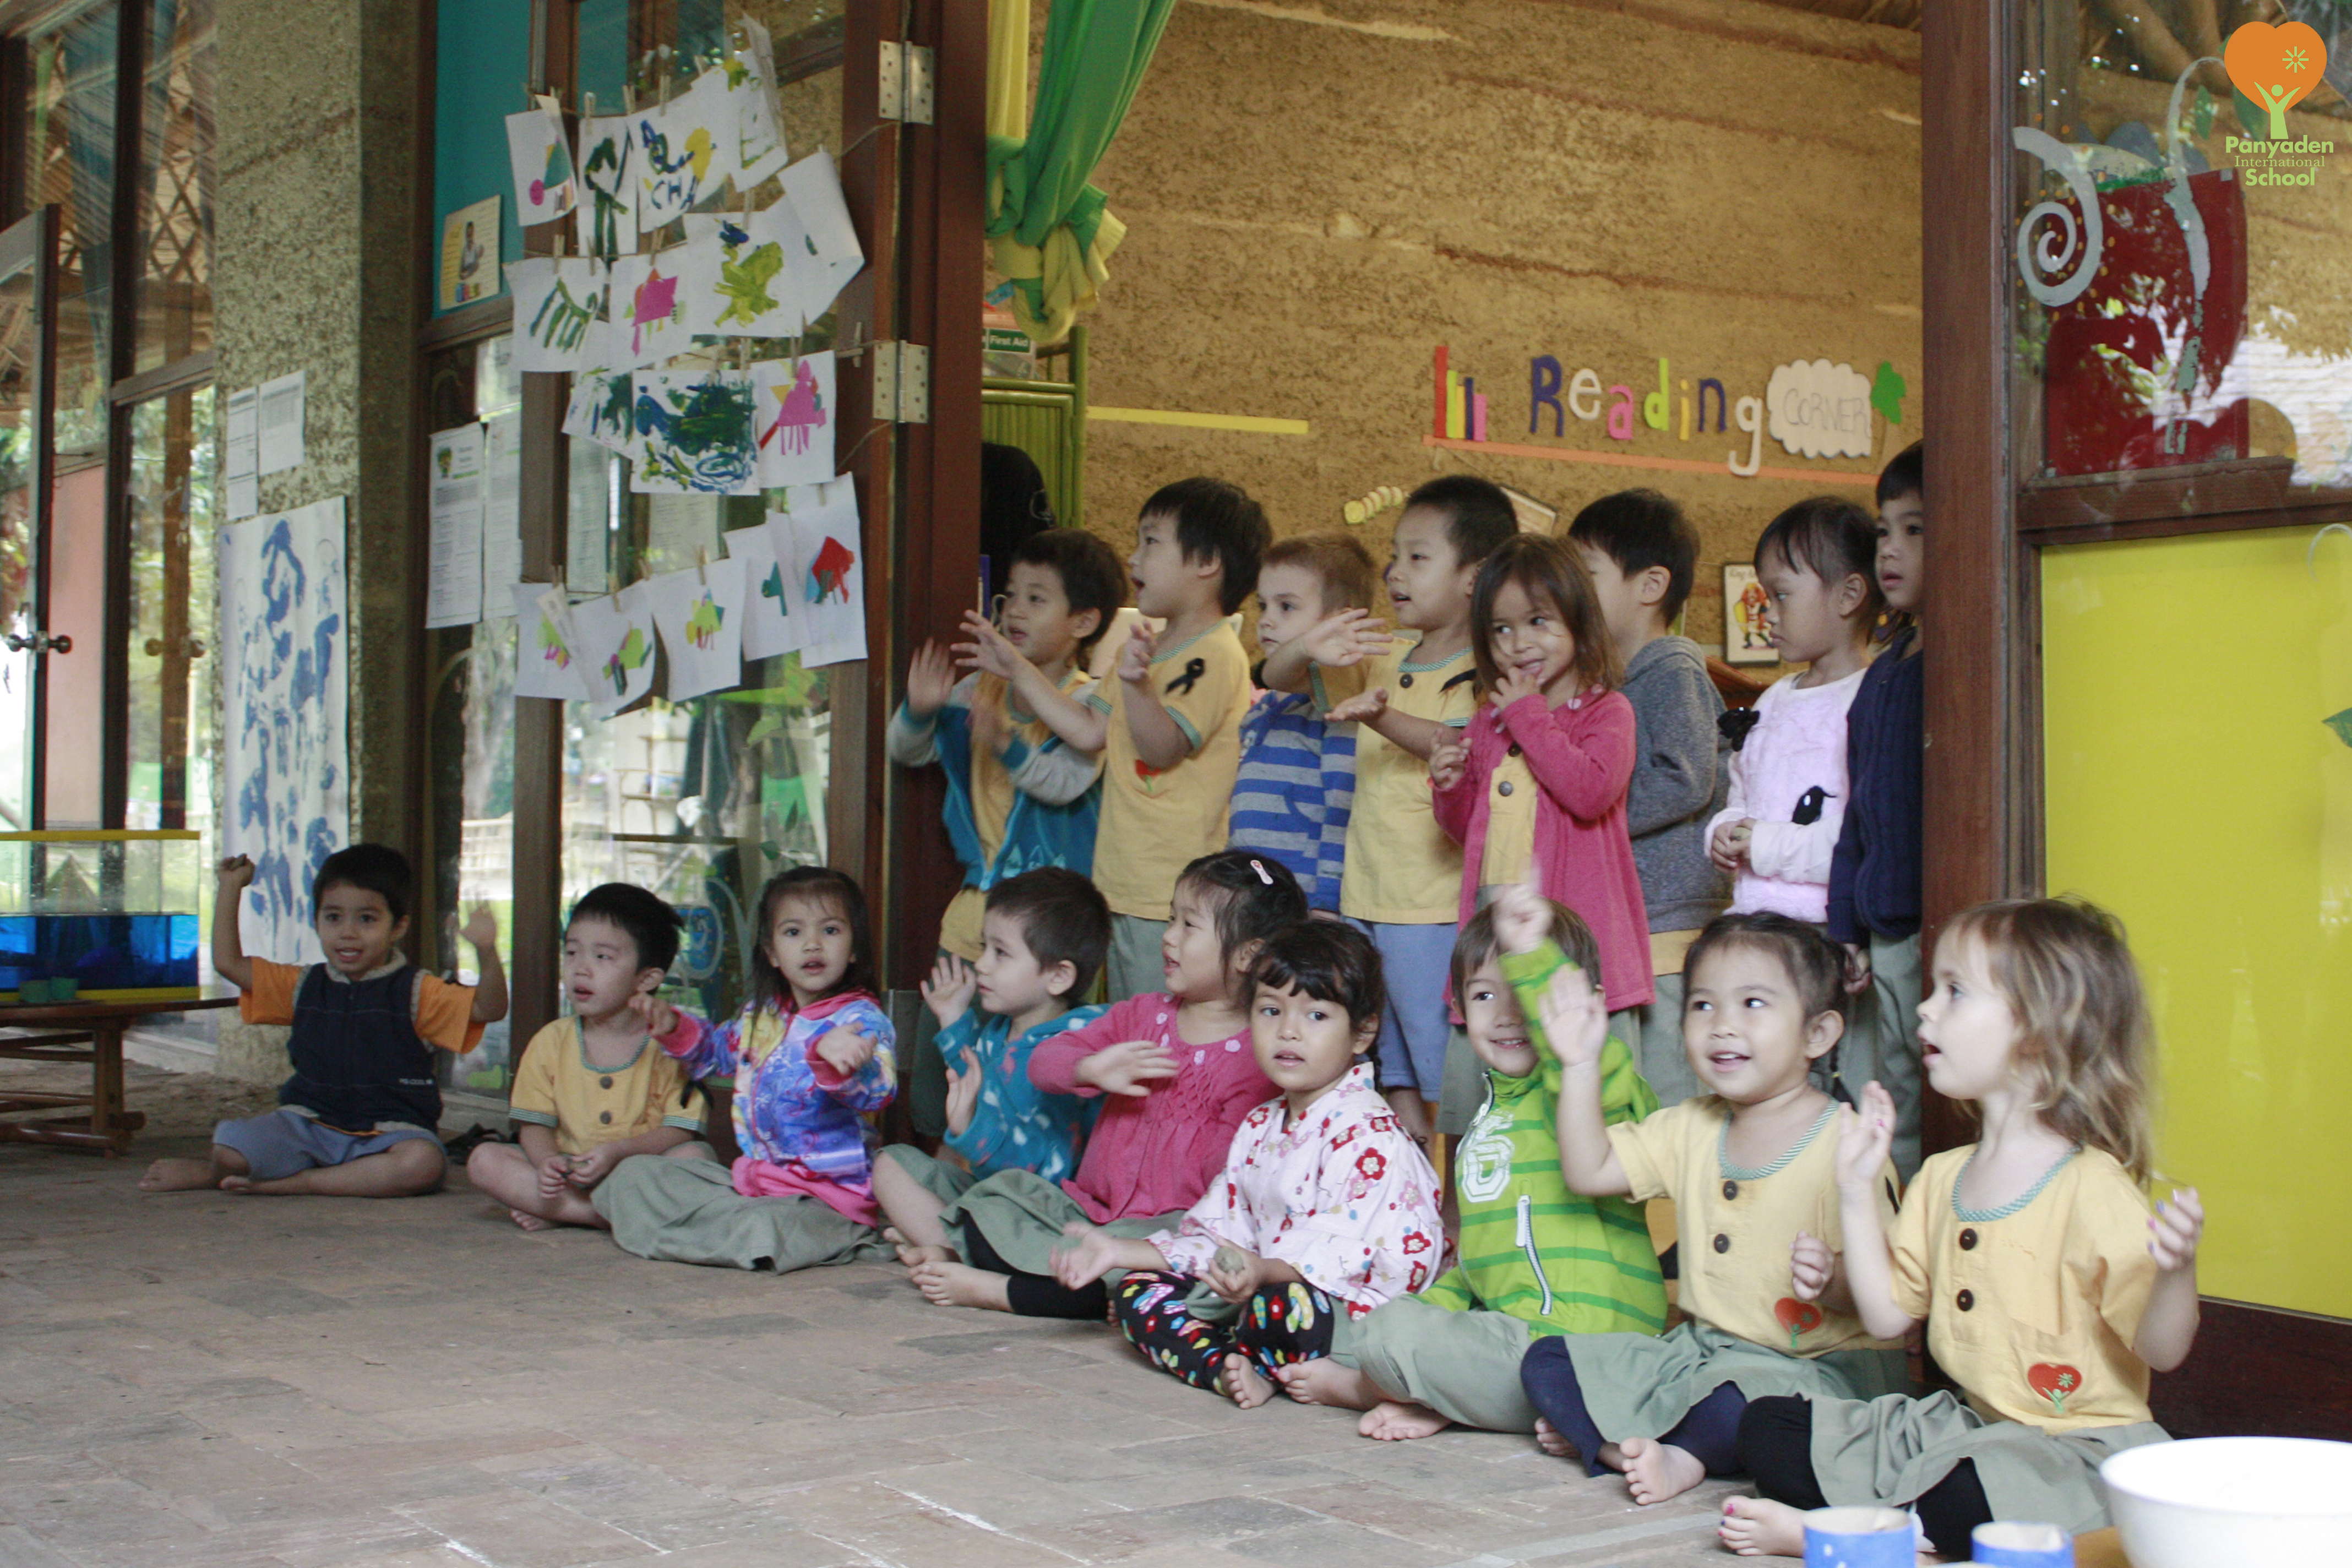 Preschool students perform a song for their parents on Panyaden's Budding Day